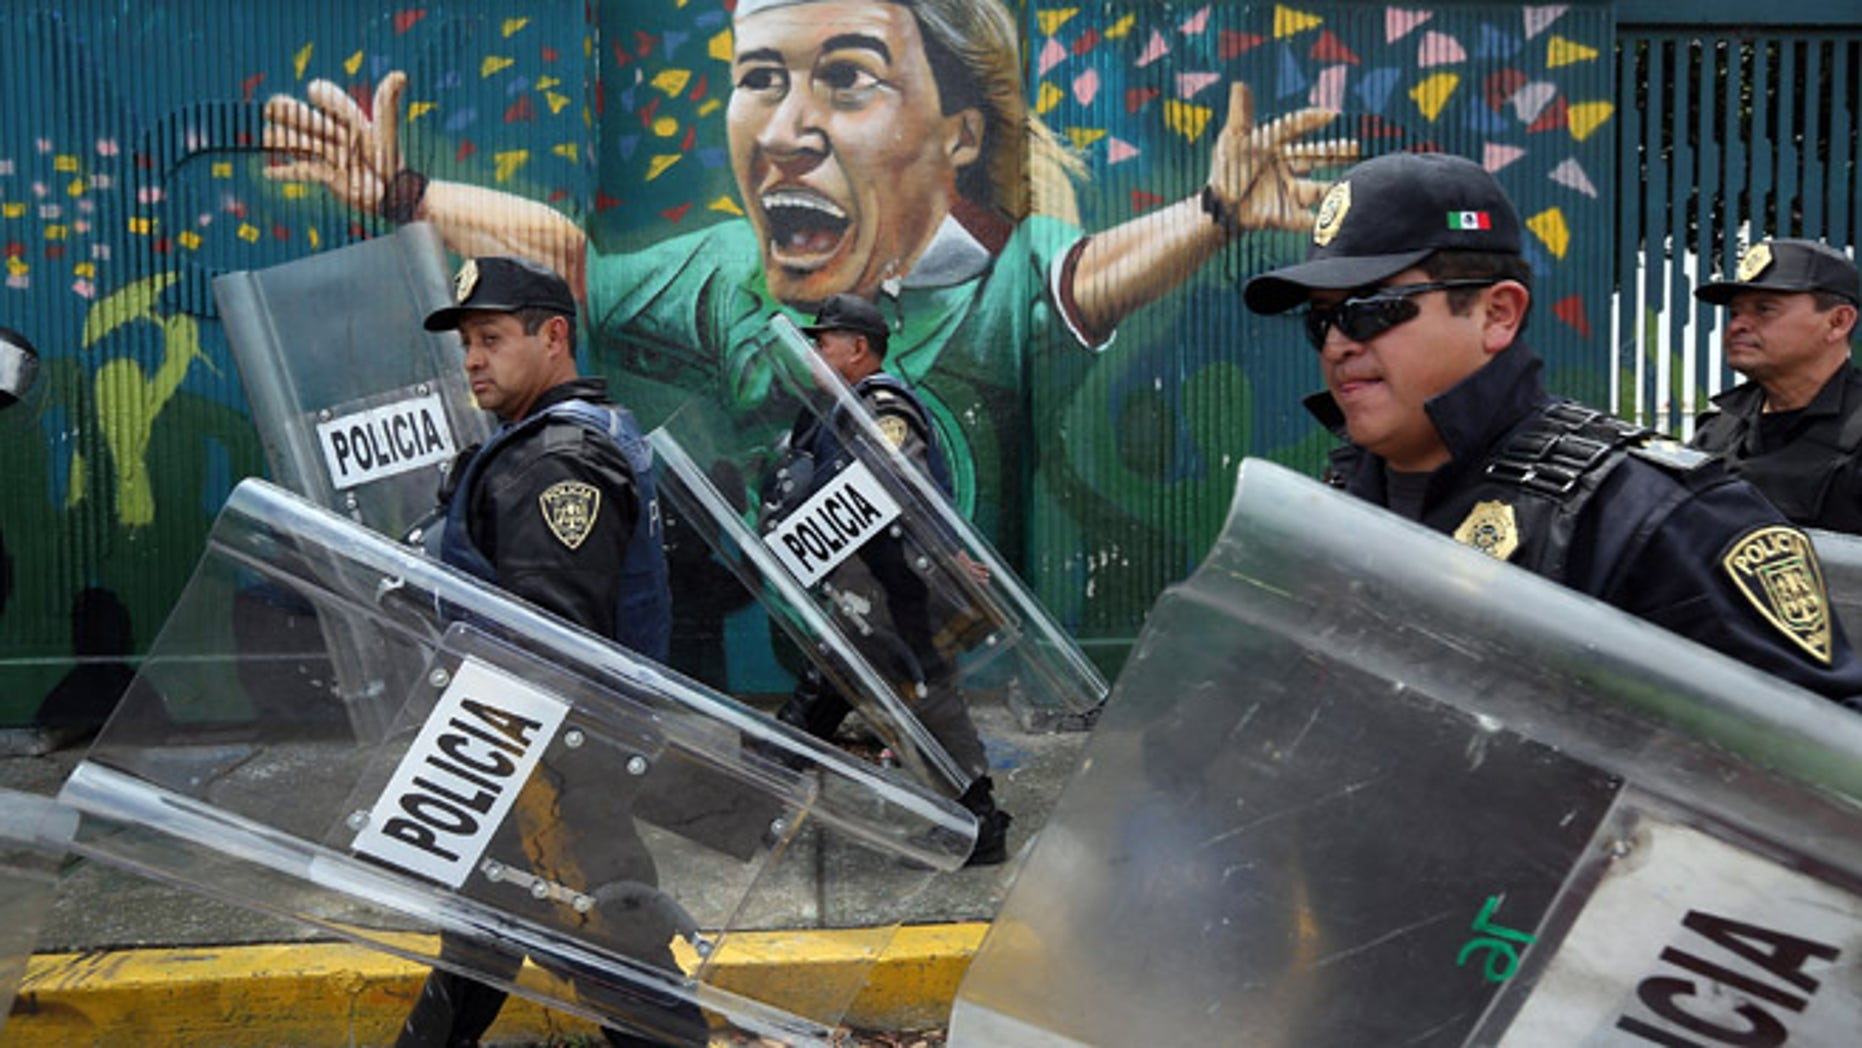 MEXICO CITY, MEXICO - JUNE 24: Police walk past a mural of Mexican soccer legend Luis Hernandez at the Azteca soccer stadium following the final campaign rally of Enrique Pena Nieto, presidential candidate for the Institutional Revolutionary Party (PRI), on June 24, 2012 in Mexico City, Mexico. Pena Nieto leads the polls going into the July 1 presidential election. If he wins, the PRI will return to power twelve years after losing the presidency to the ruling National Action Party (PAN), in 2000. (Photo by John Moore/Getty Images)